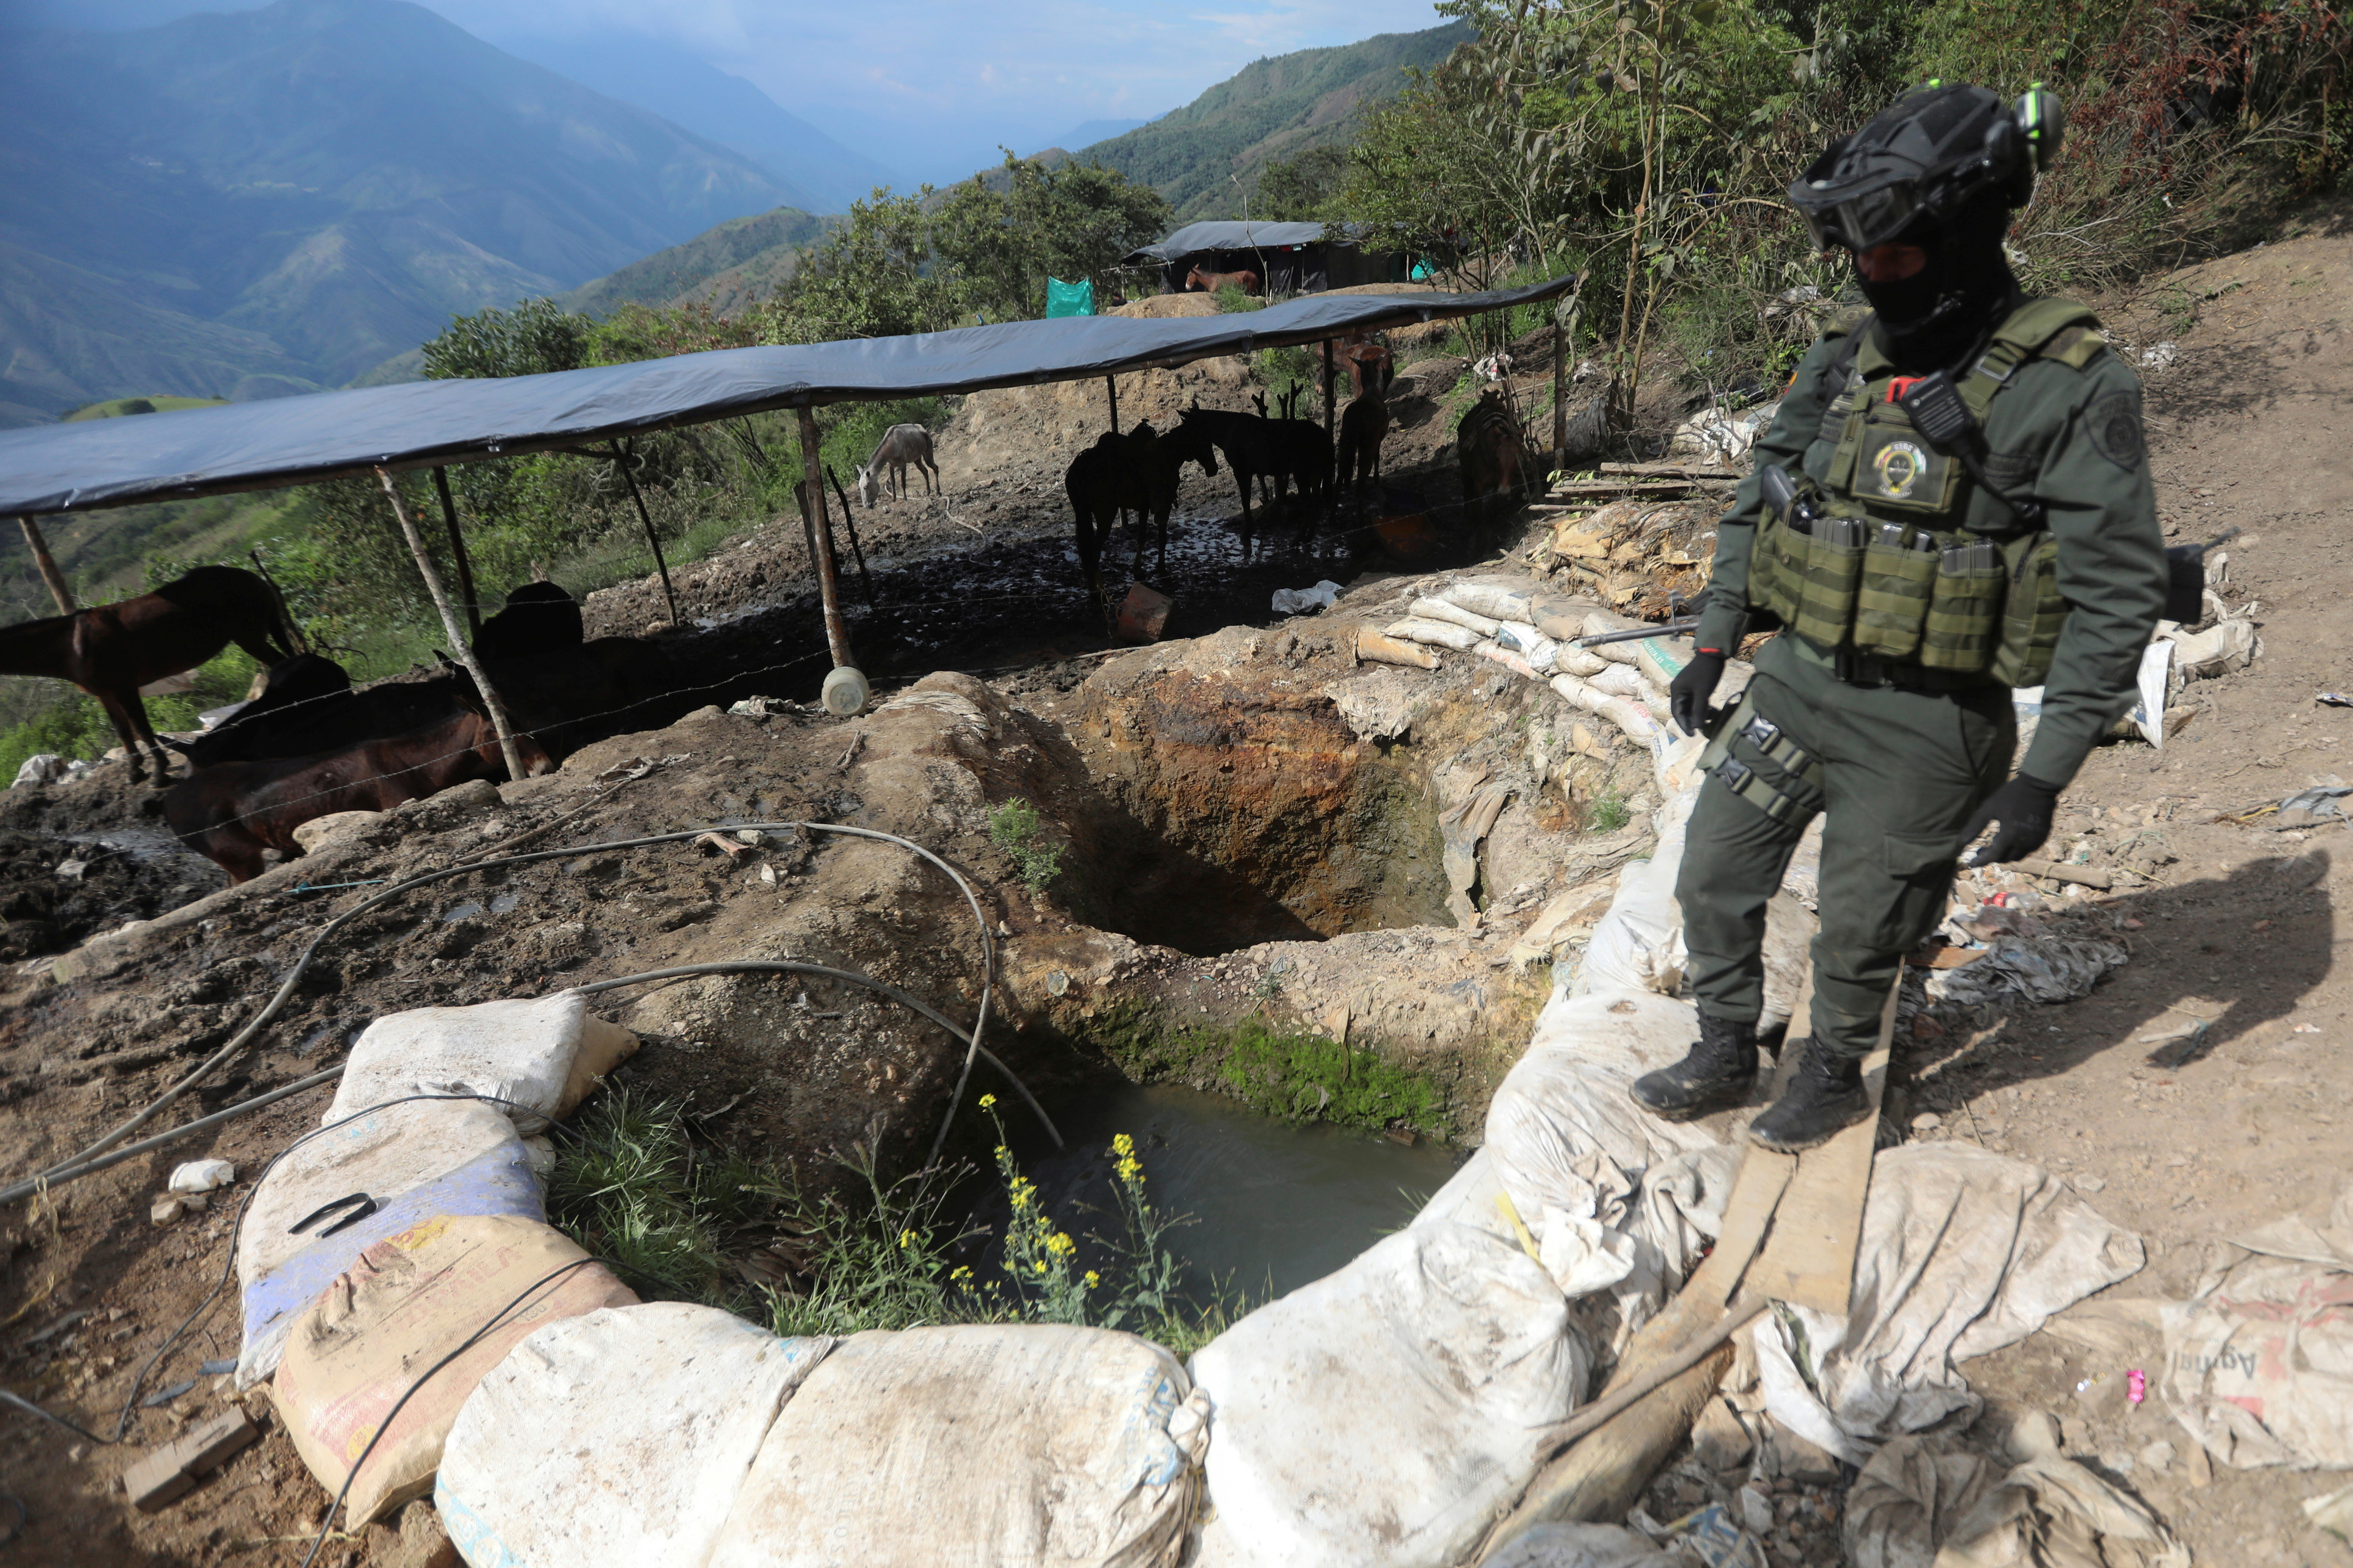 A policeman stands next to a well where minerals taken from illegal gold mines are washed in Buritica, Colombia April 20, 2021. Picture taken April 20, 2021. REUTERS/Luisa Gonzalez